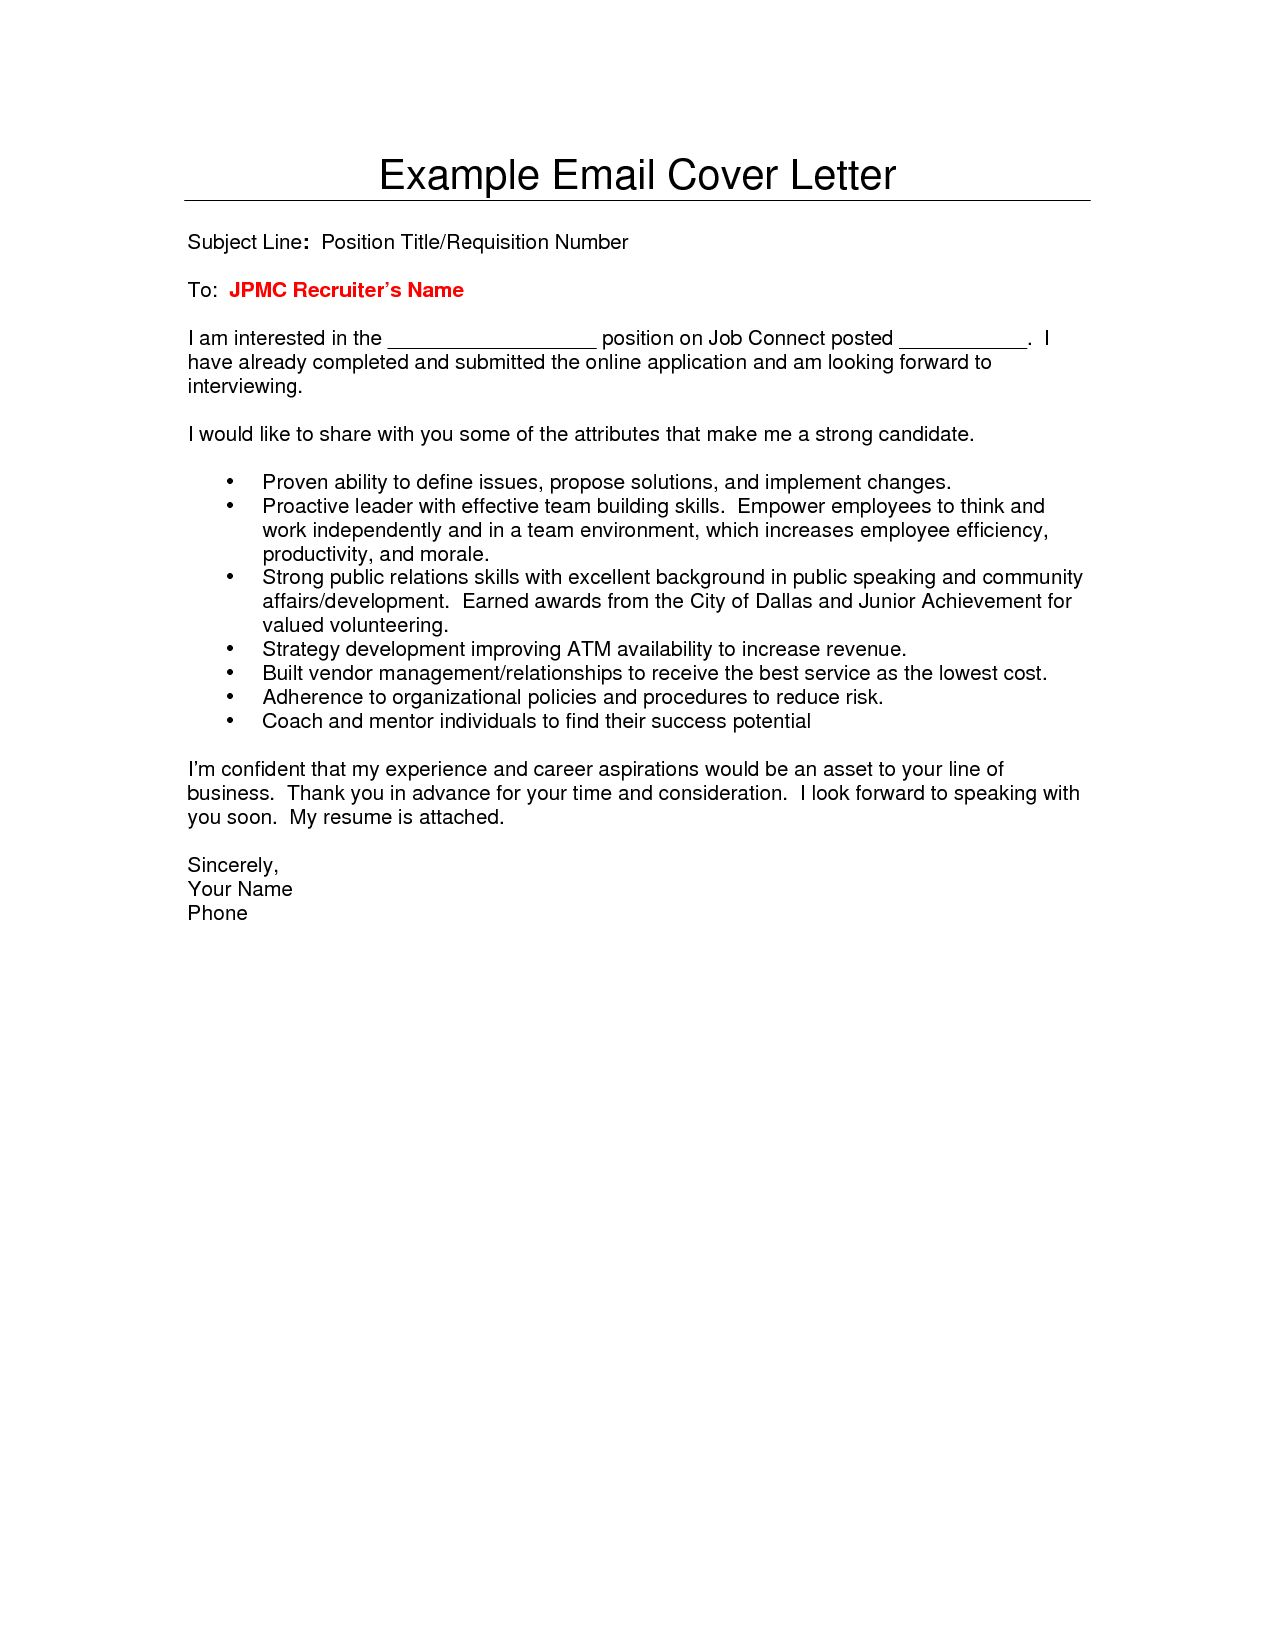 email cover letter sample bravebtr also template youth central rh pinterest